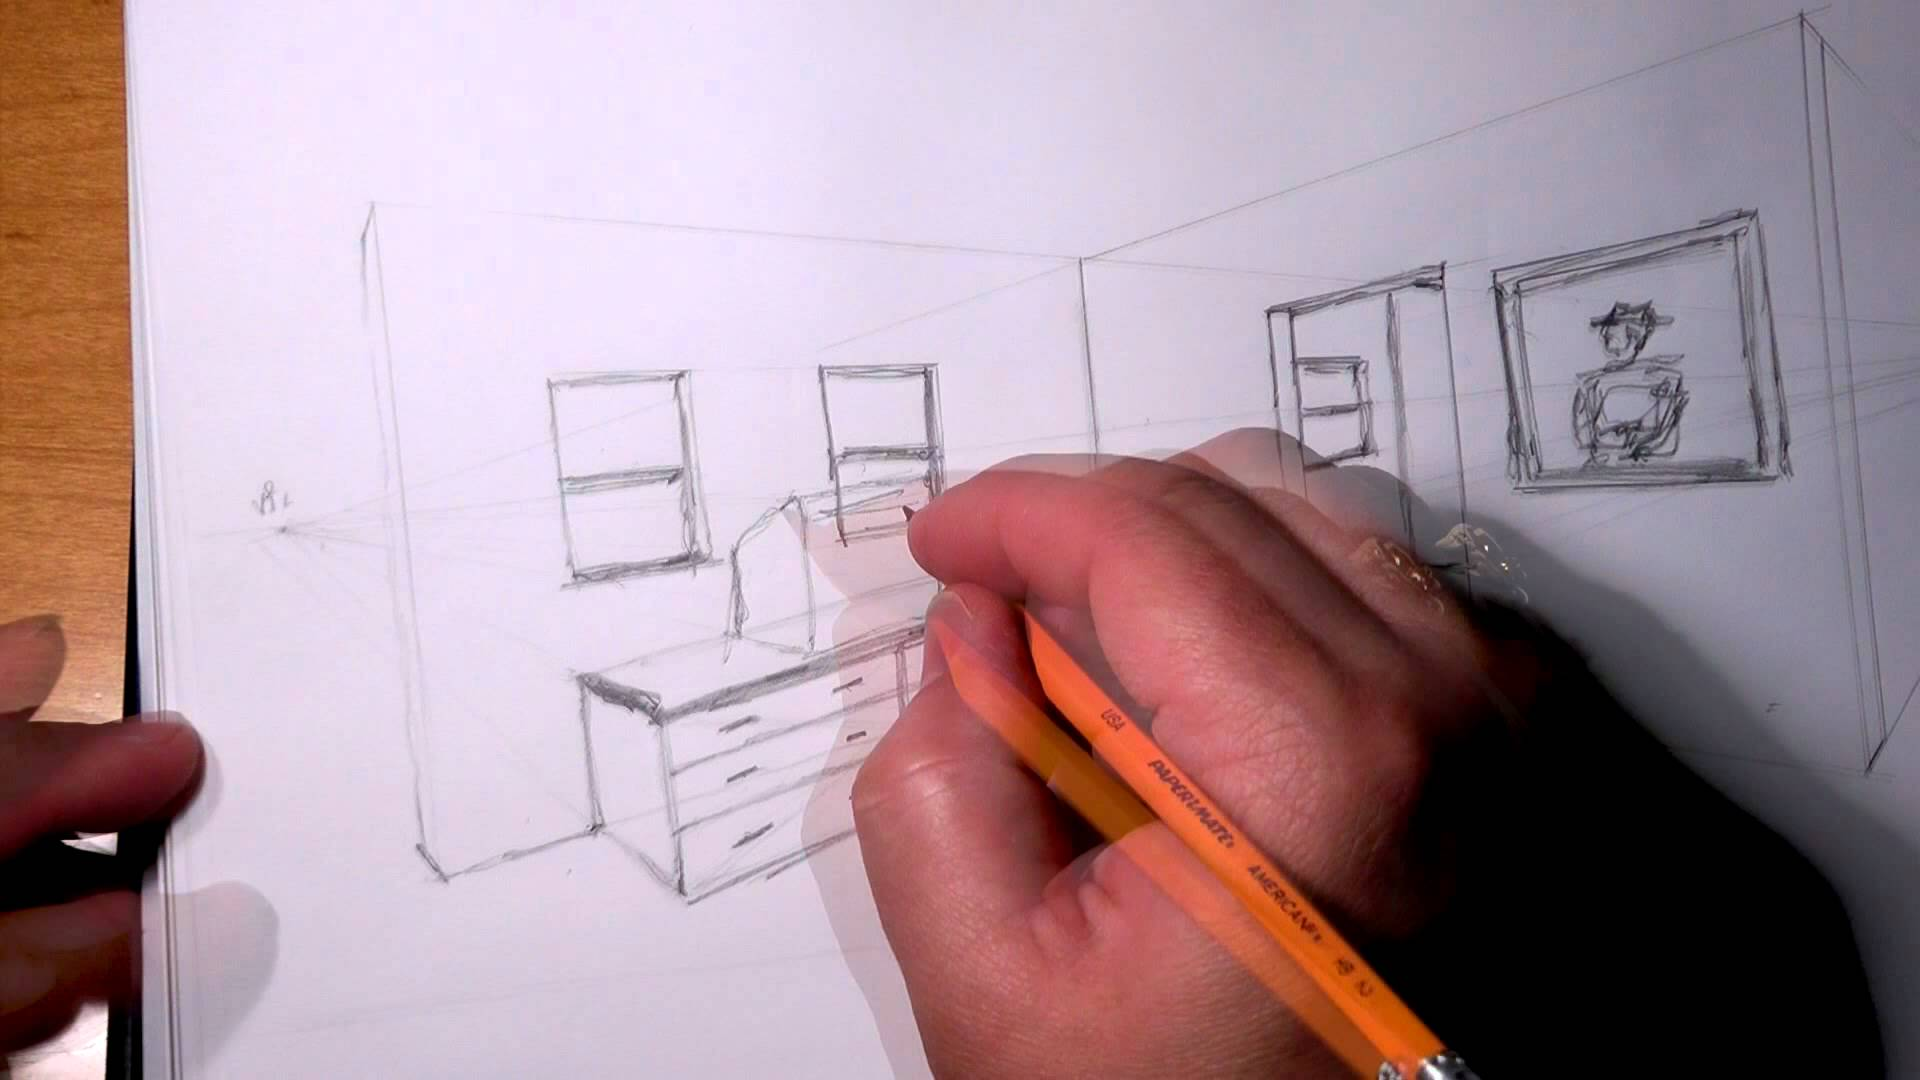 Drawn room two Perspective YouTube 2 Wireframe Wireframe